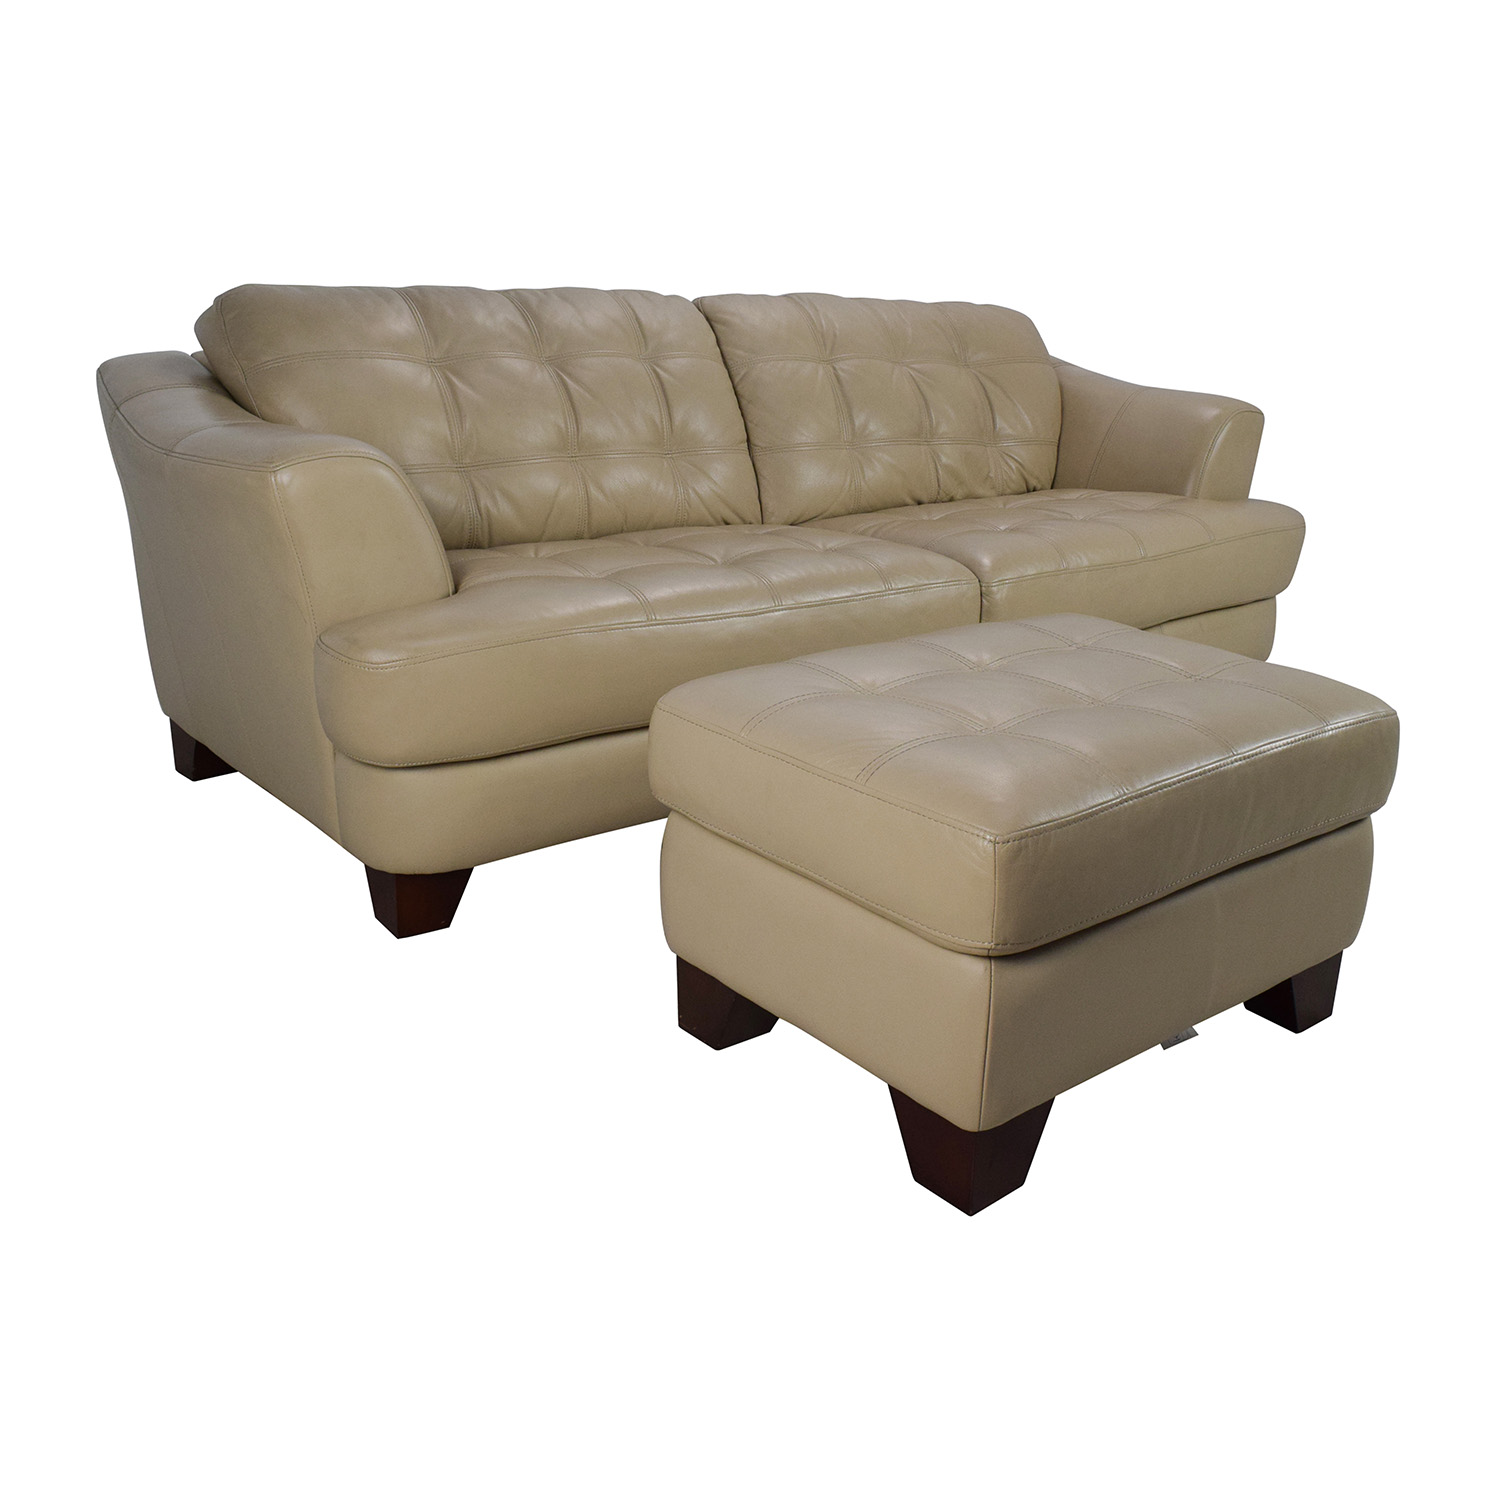 Bob S Leather Sleeper Sofa Centerfieldbarcom